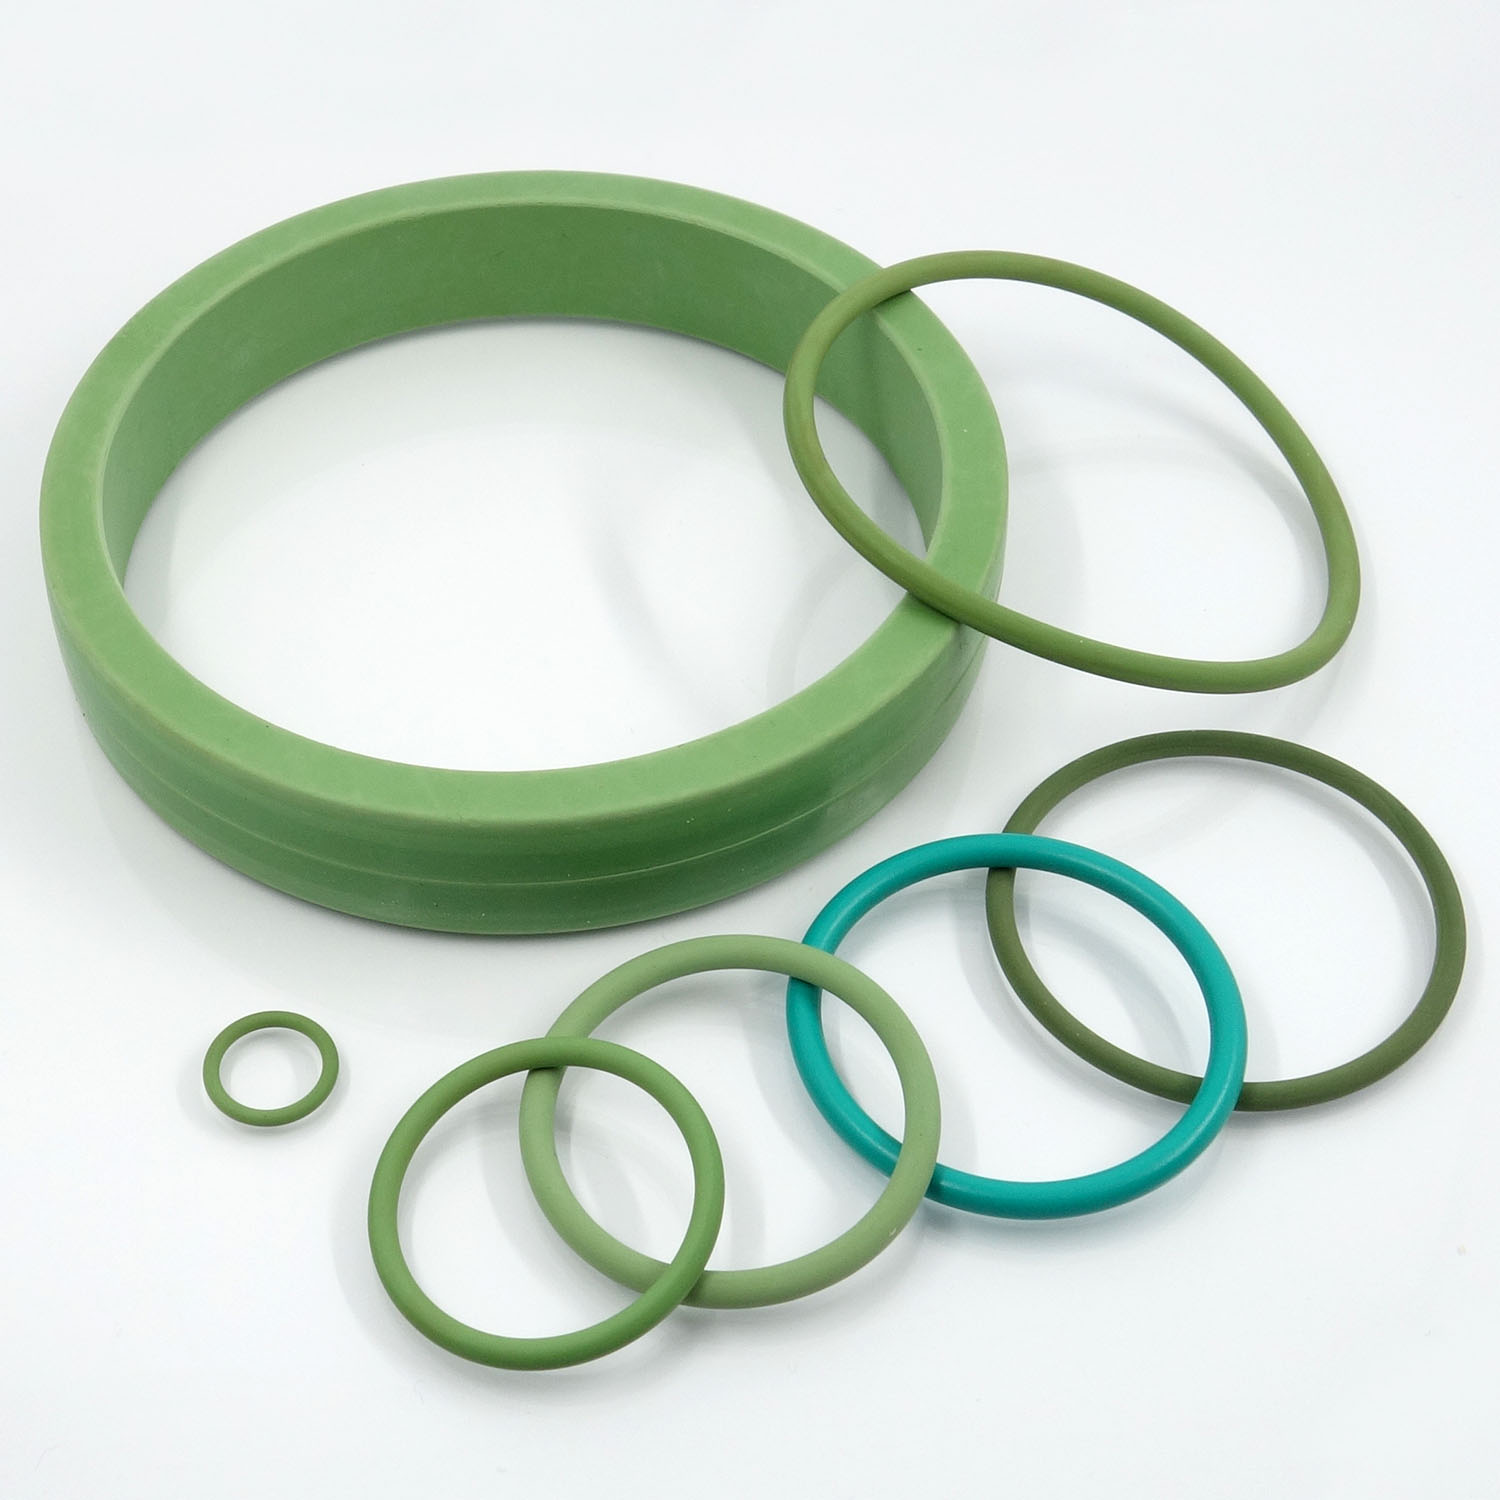 BEST GASKET KIT